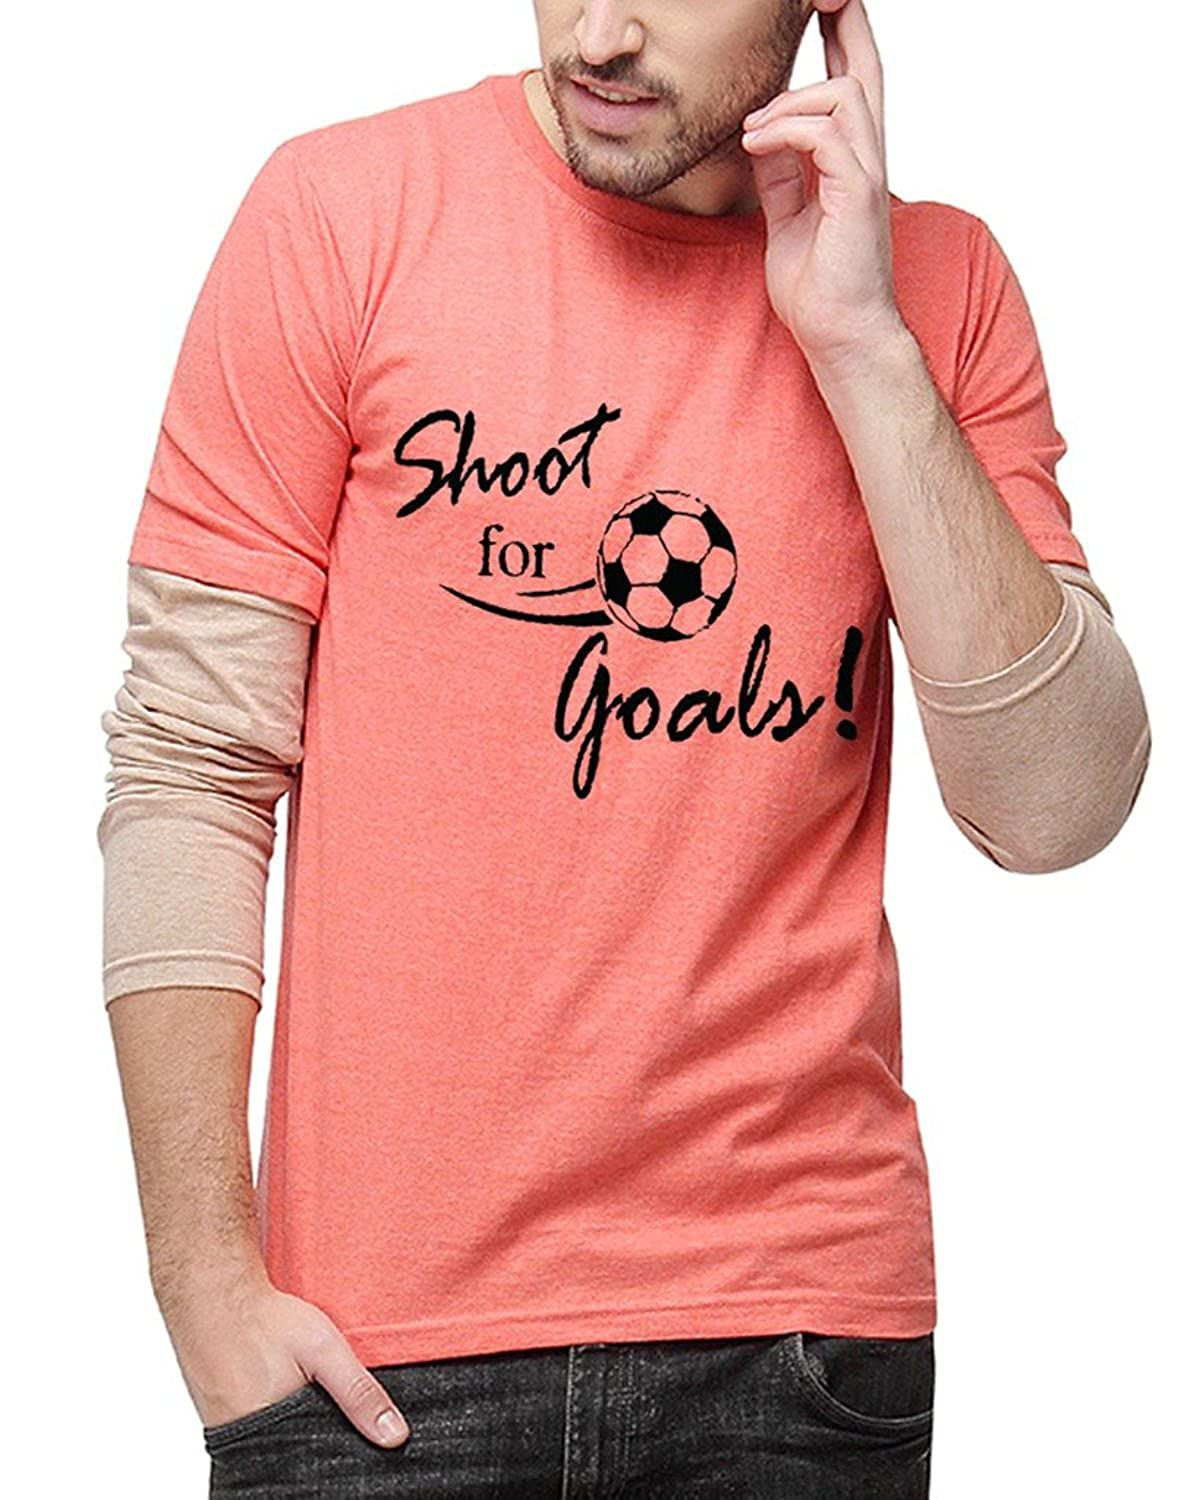 Image result for Amazon Offer : Get upto 40% off on Men's T-shirts